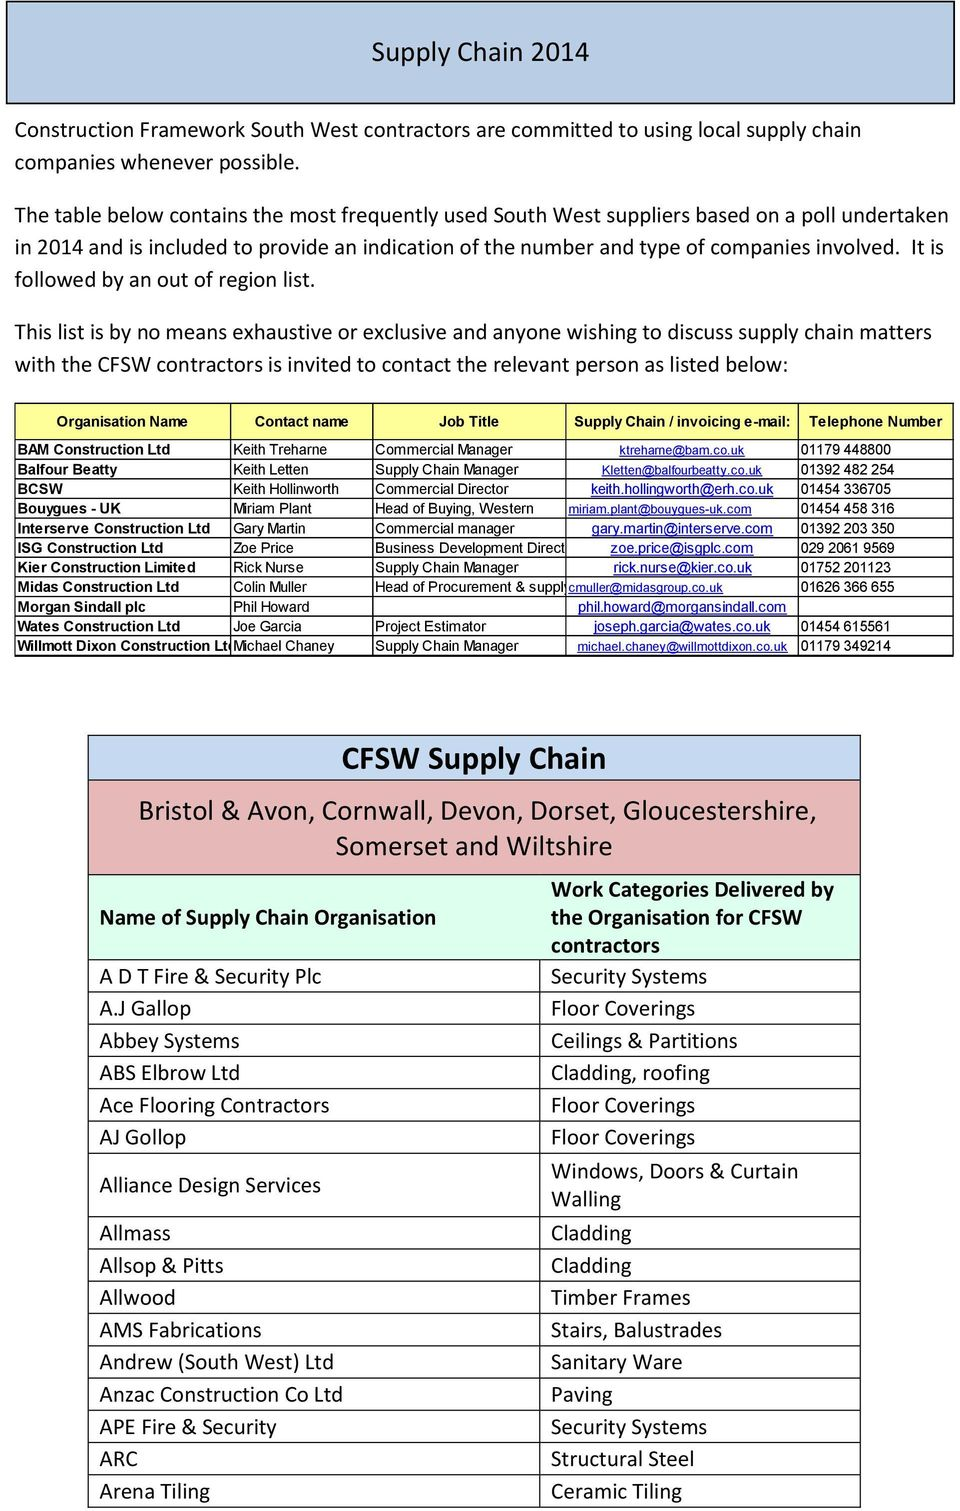 Supply Chain Construction Framework South West contractors are